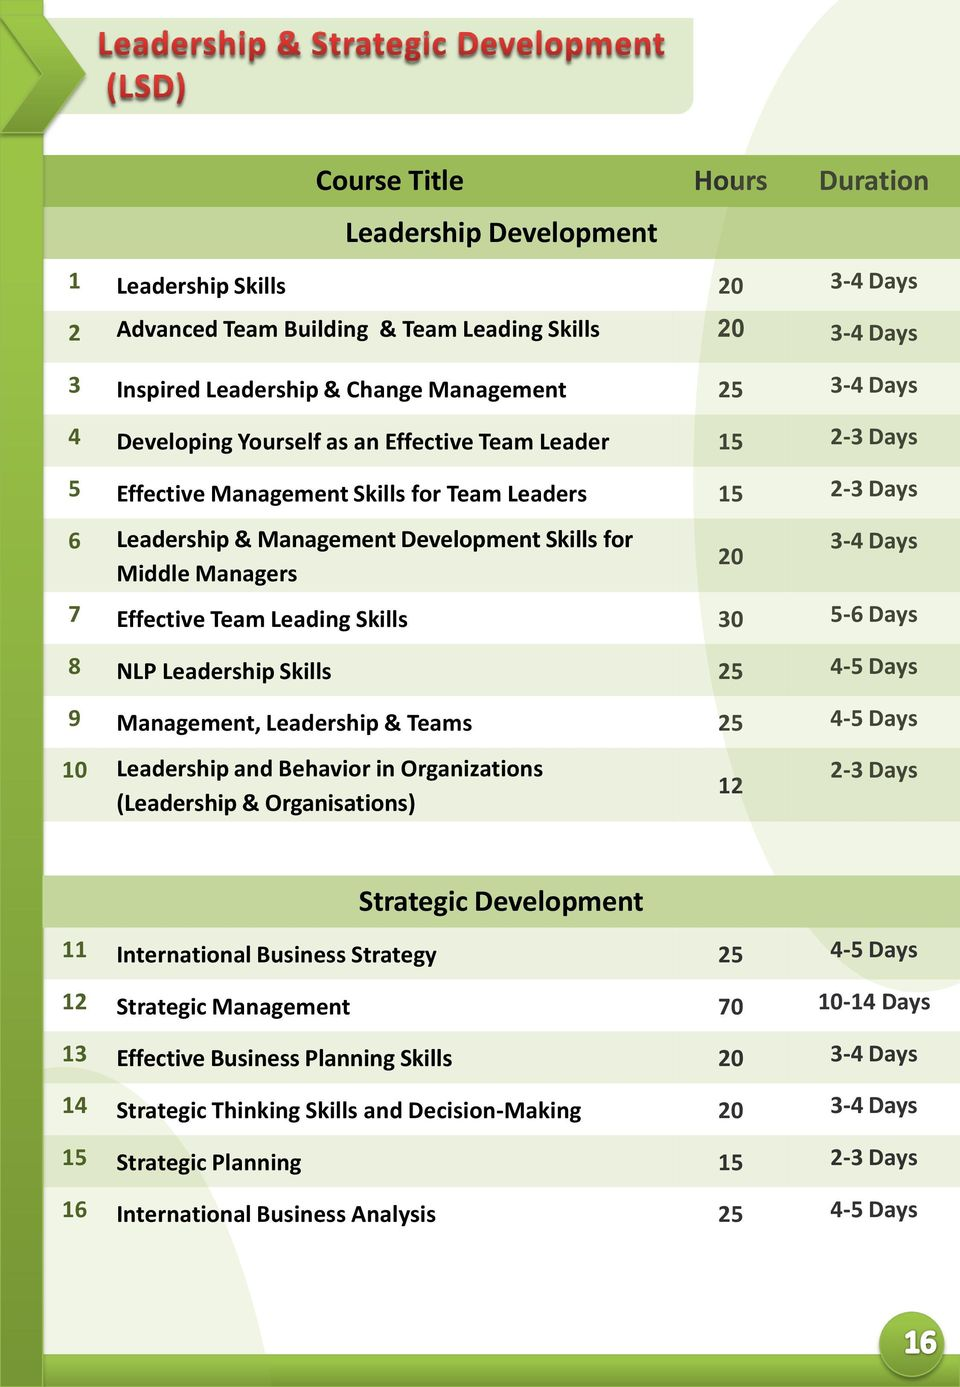 Days 8 NLP Leadership Skills 25 4-5 Days 9 Management, Leadership & Teams 25 4-5 Days 10 Leadership and Behavior in Organizations (Leadership & Organisations) 12 2-3 Days Strategic Development 11